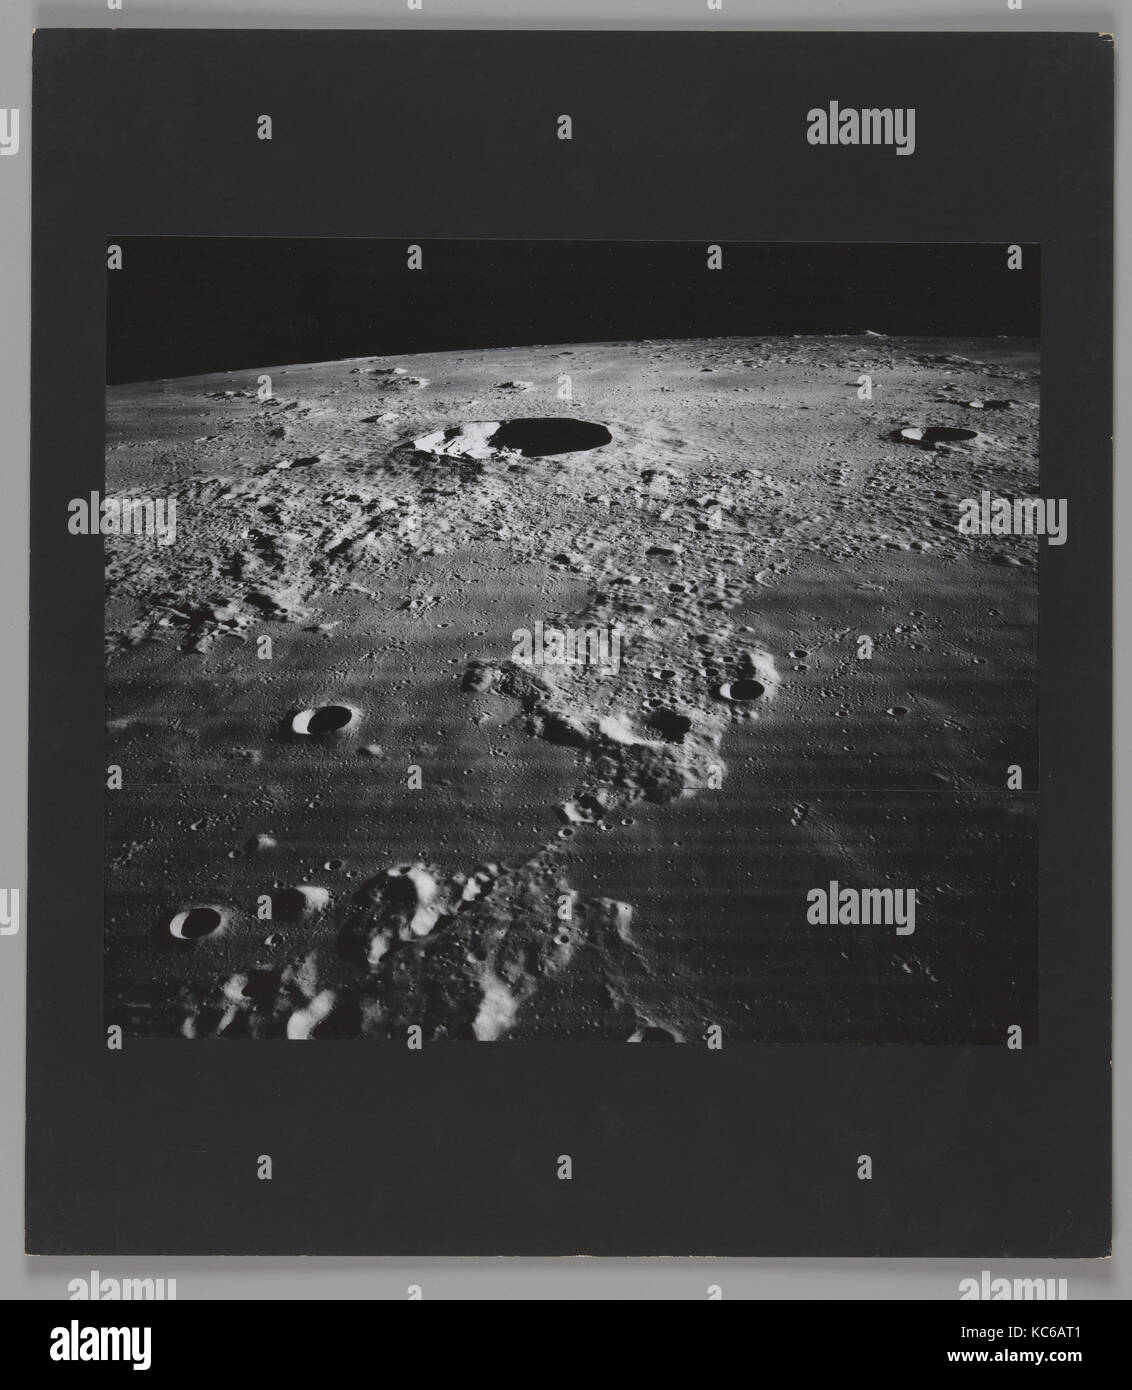 The Moon – Crater Kepler and Vicinity, National Aeronautics and Space Administration, 1967 - Stock Image